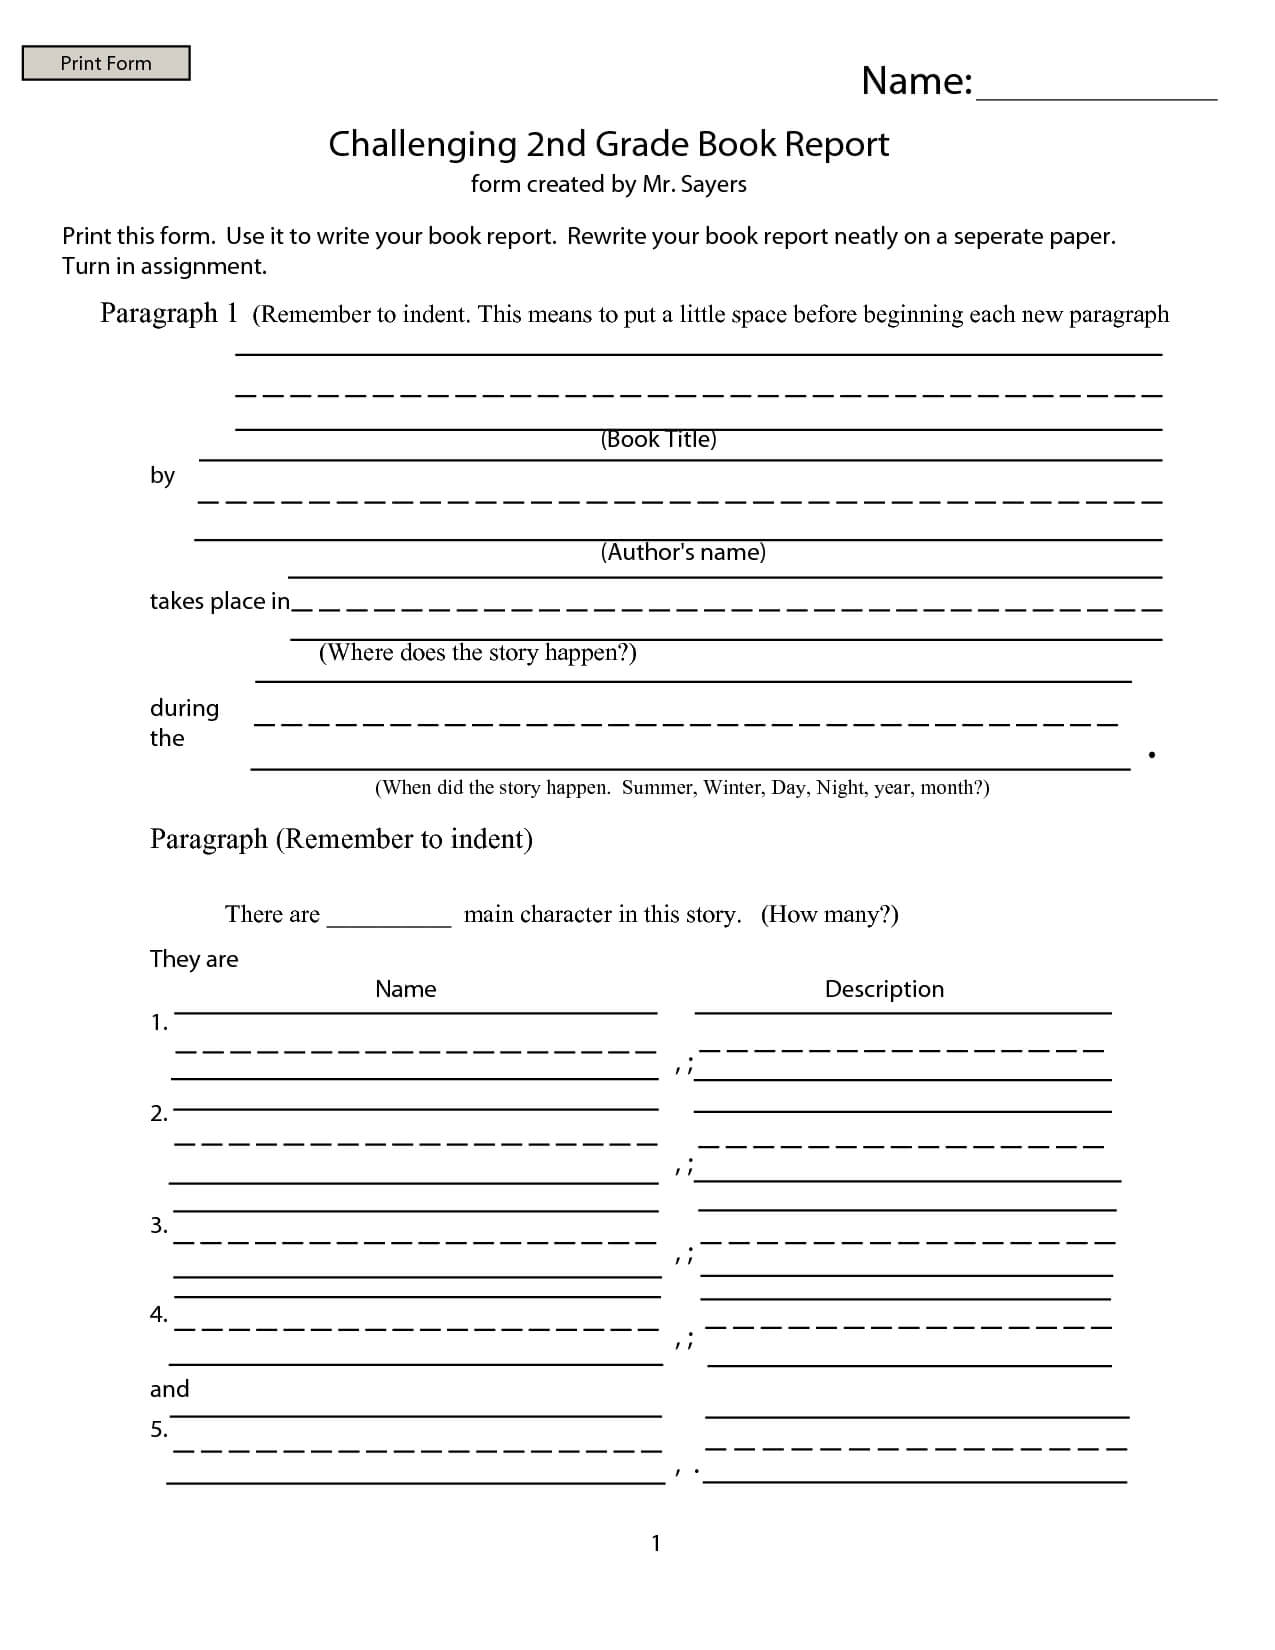 2Nd Grade Book Report – Google Search | Abc123 Intended For 2Nd Grade Book Report Template